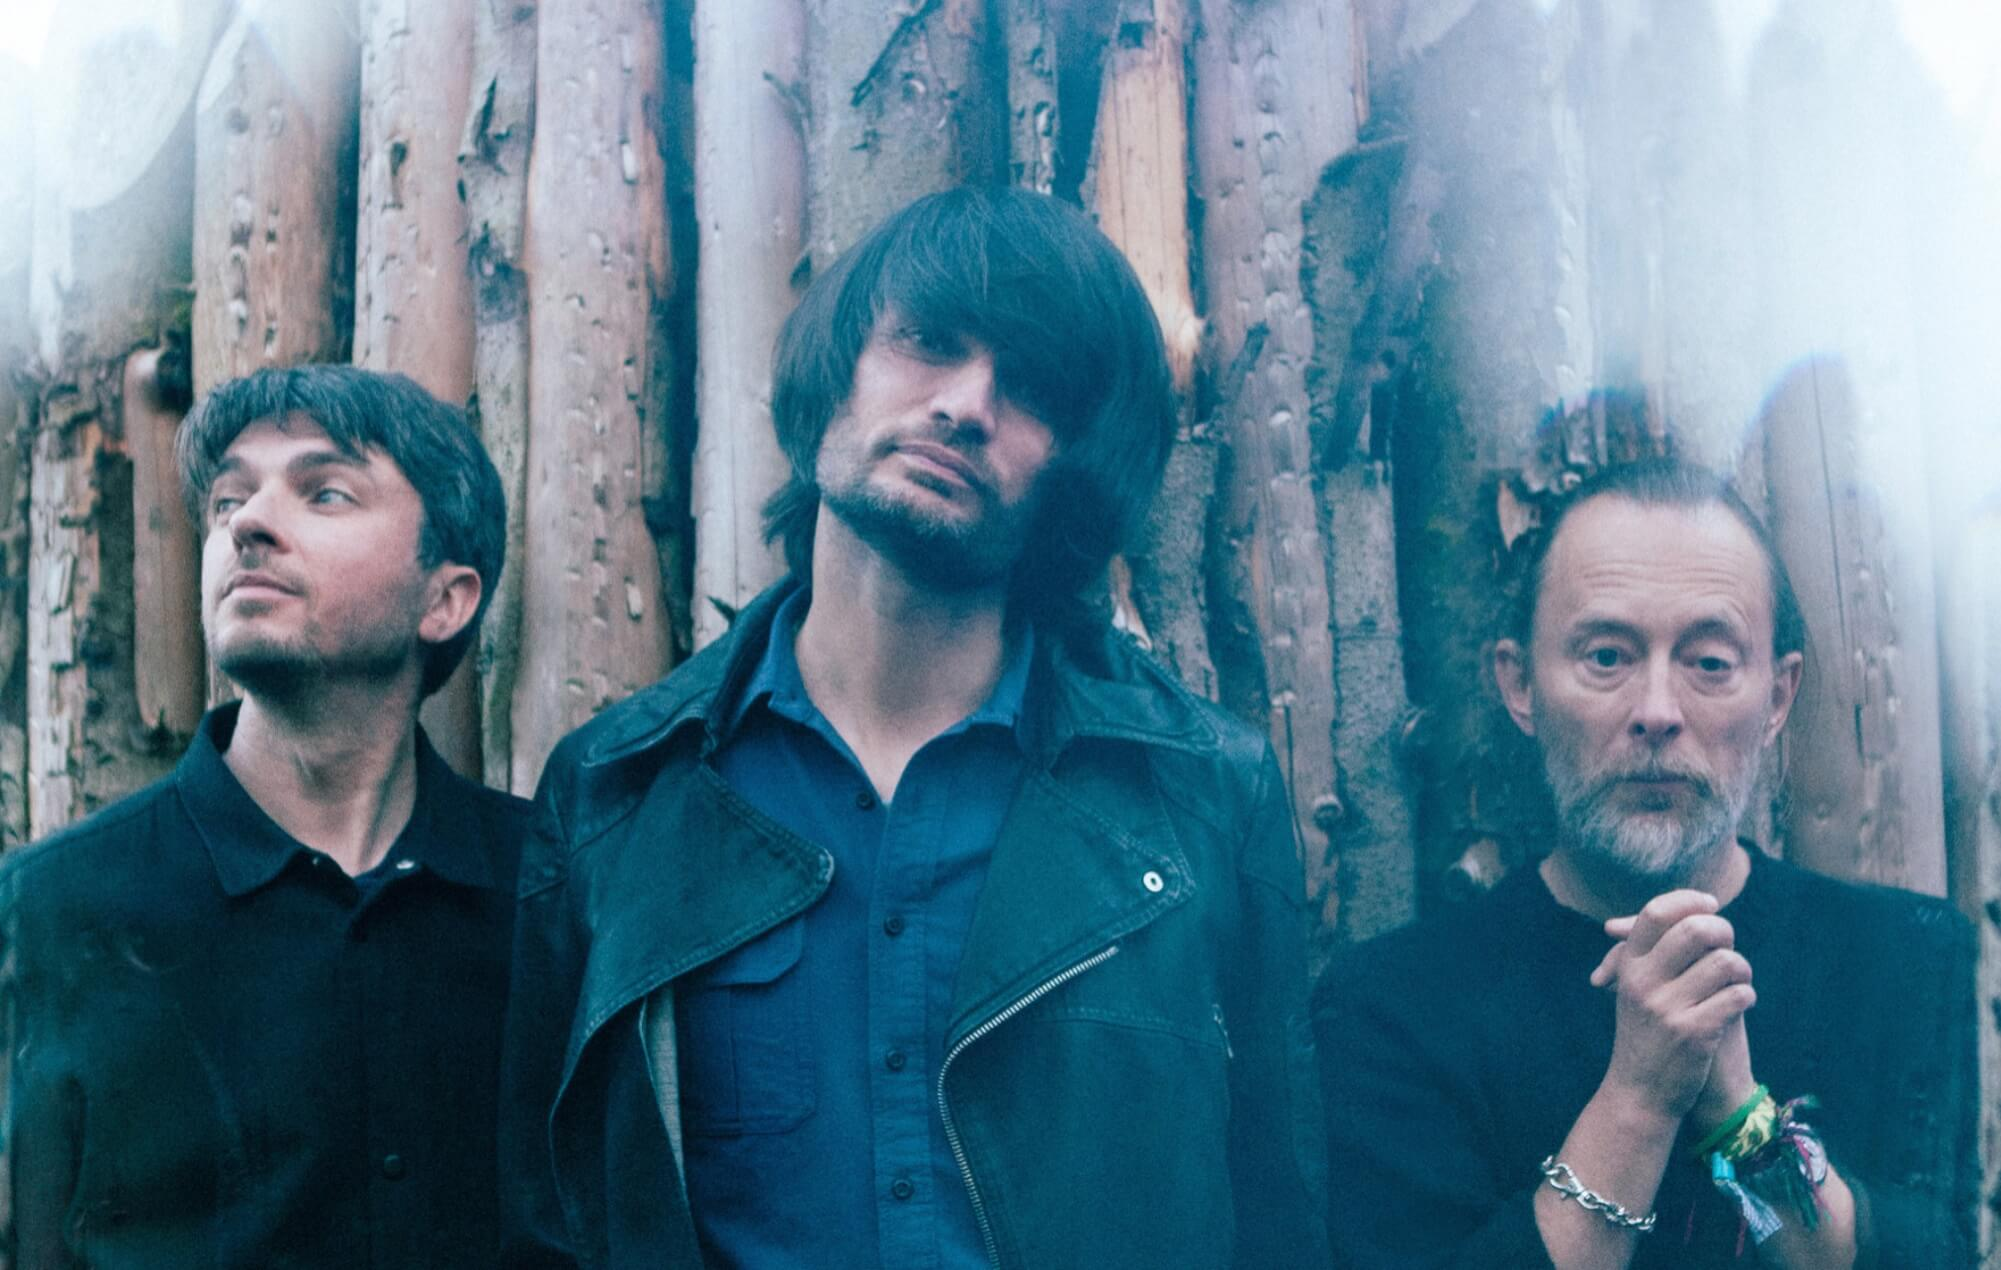 Thom Yorke, Johnny Greenwood and Tom Skinner as The Smile.